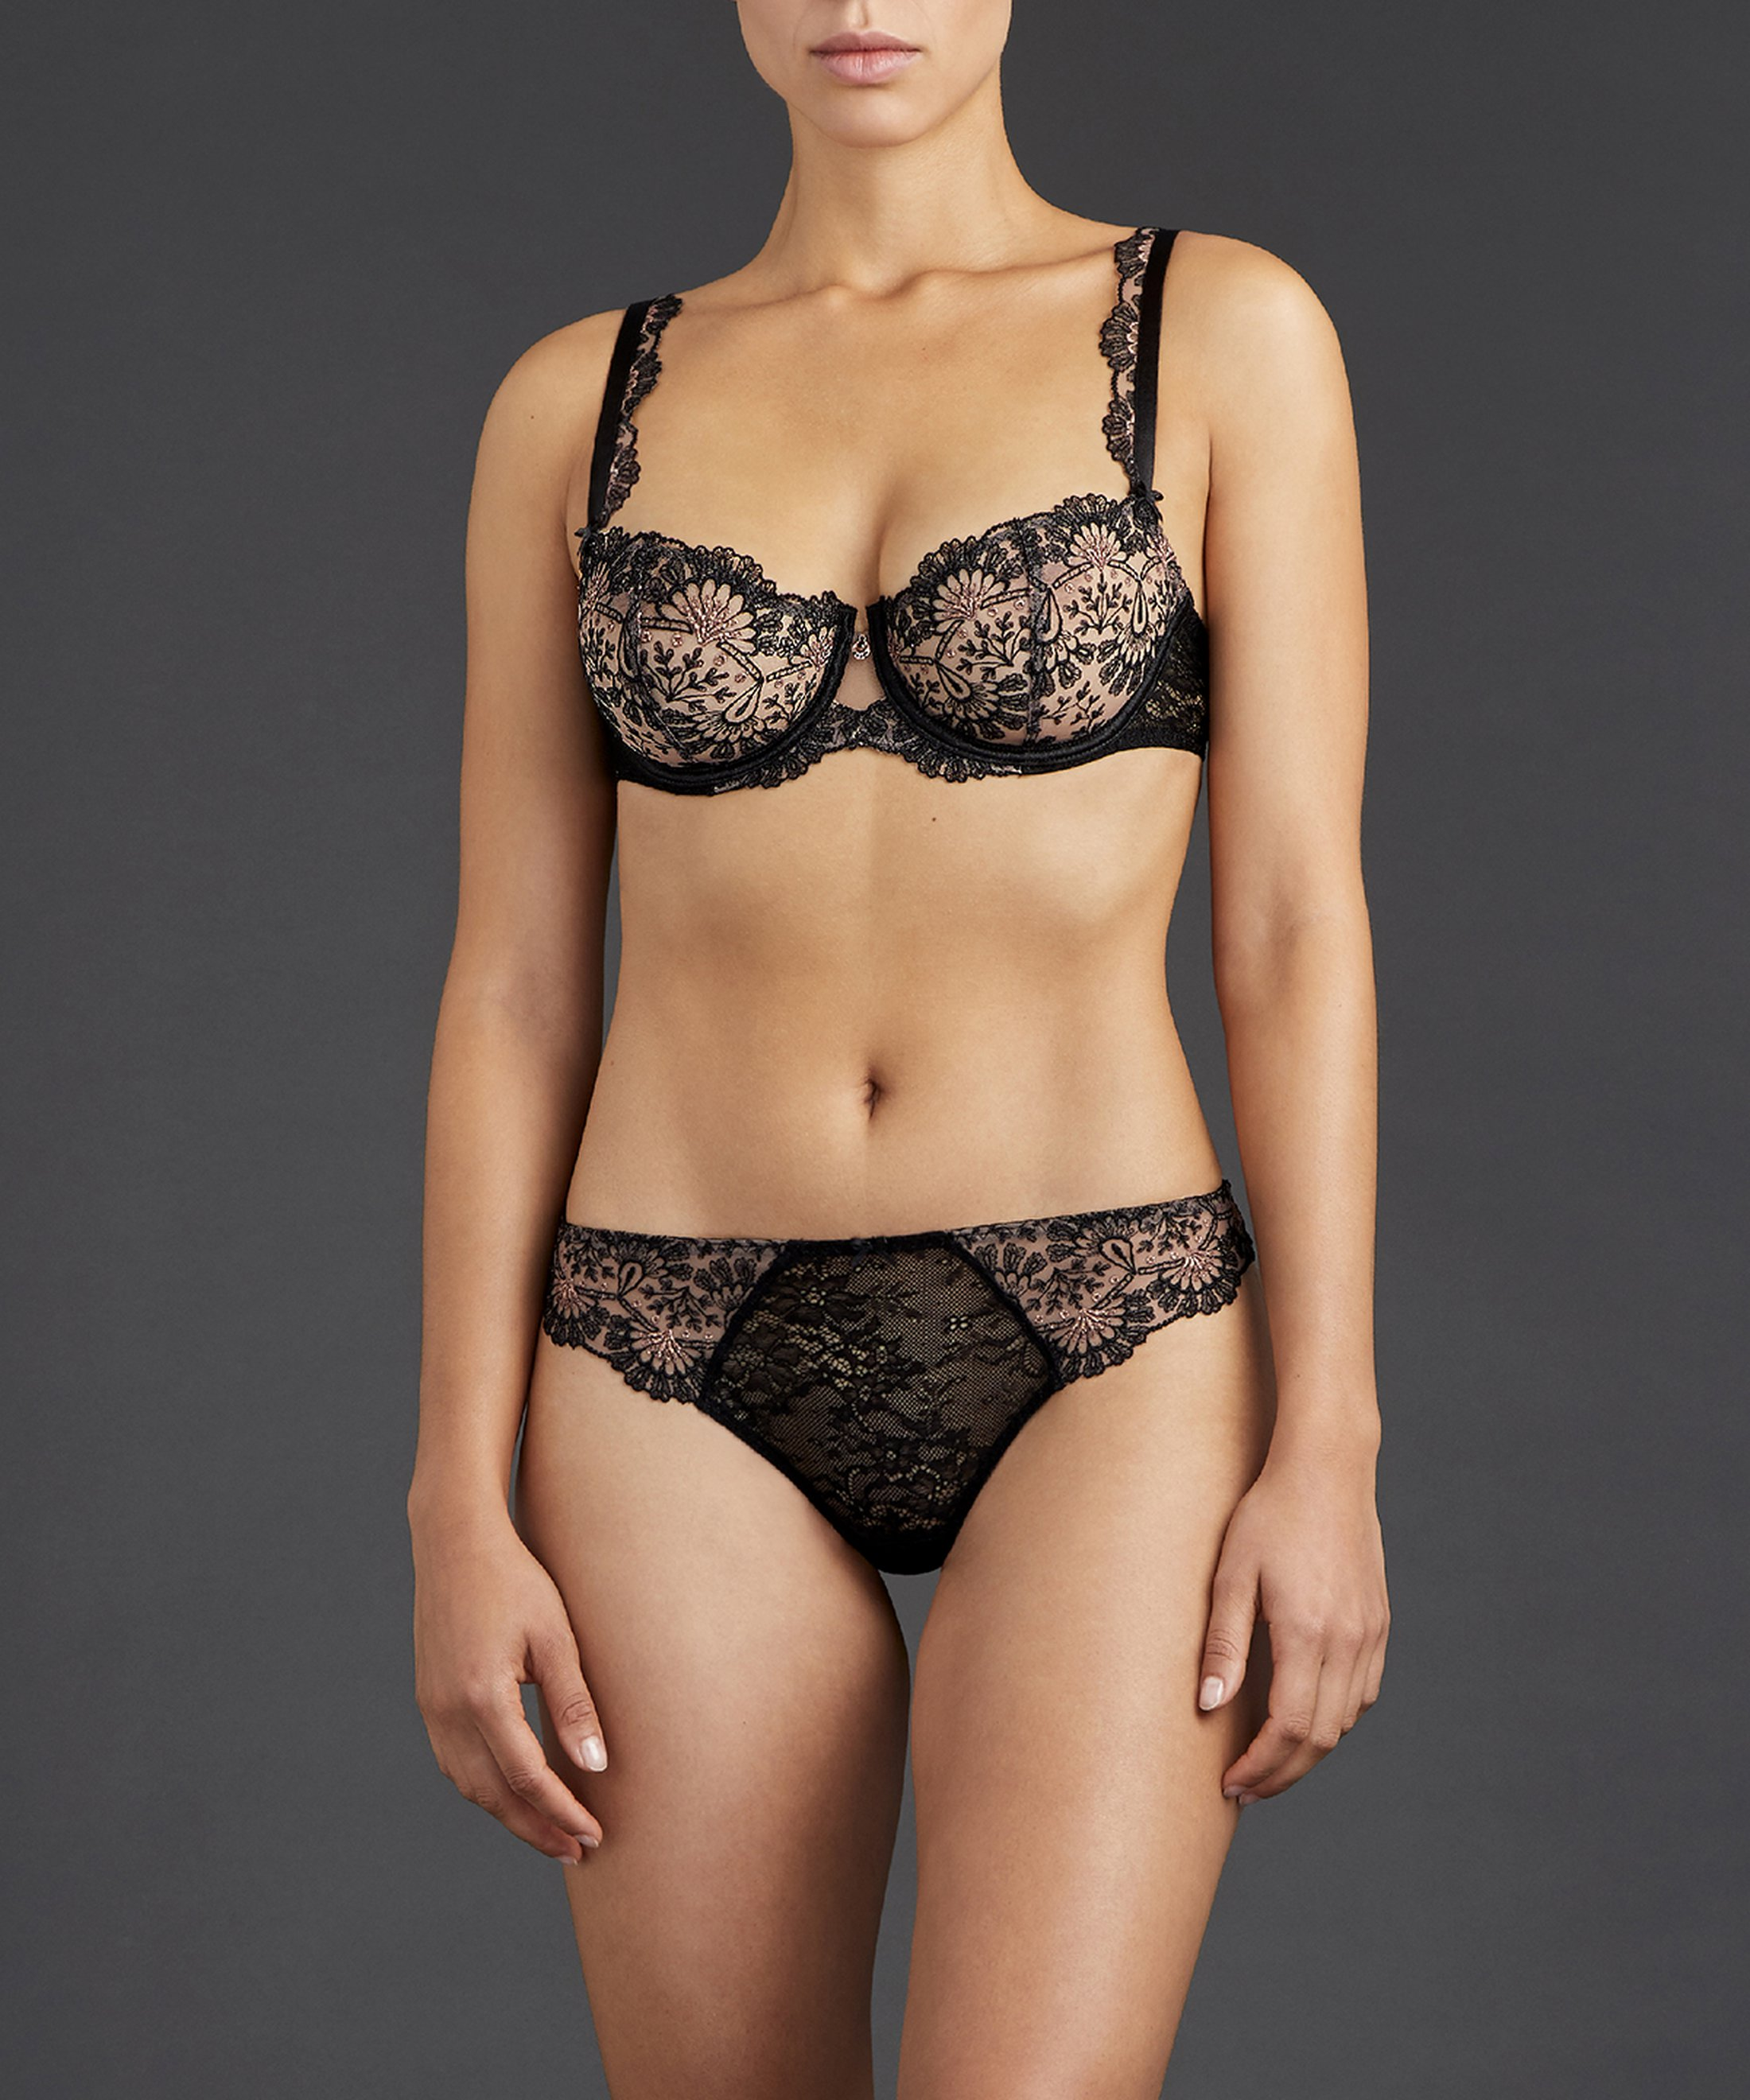 ART OF INK Soutien-gorge corbeille Noir Icone | Aubade